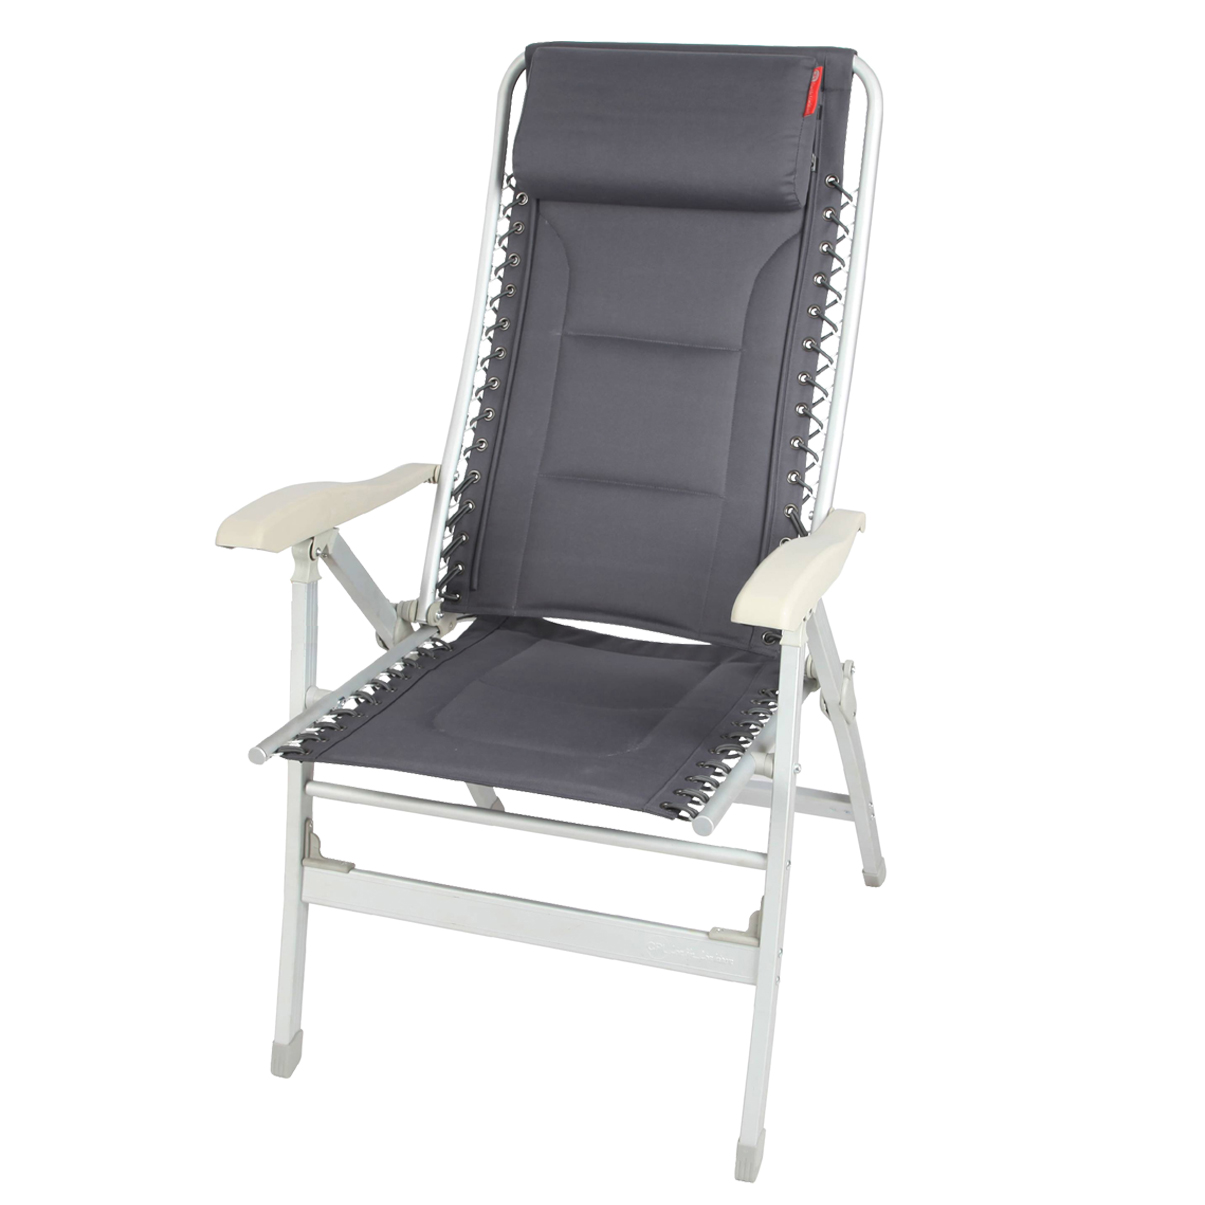 The Cpl Luxury Padded Recliner Chair